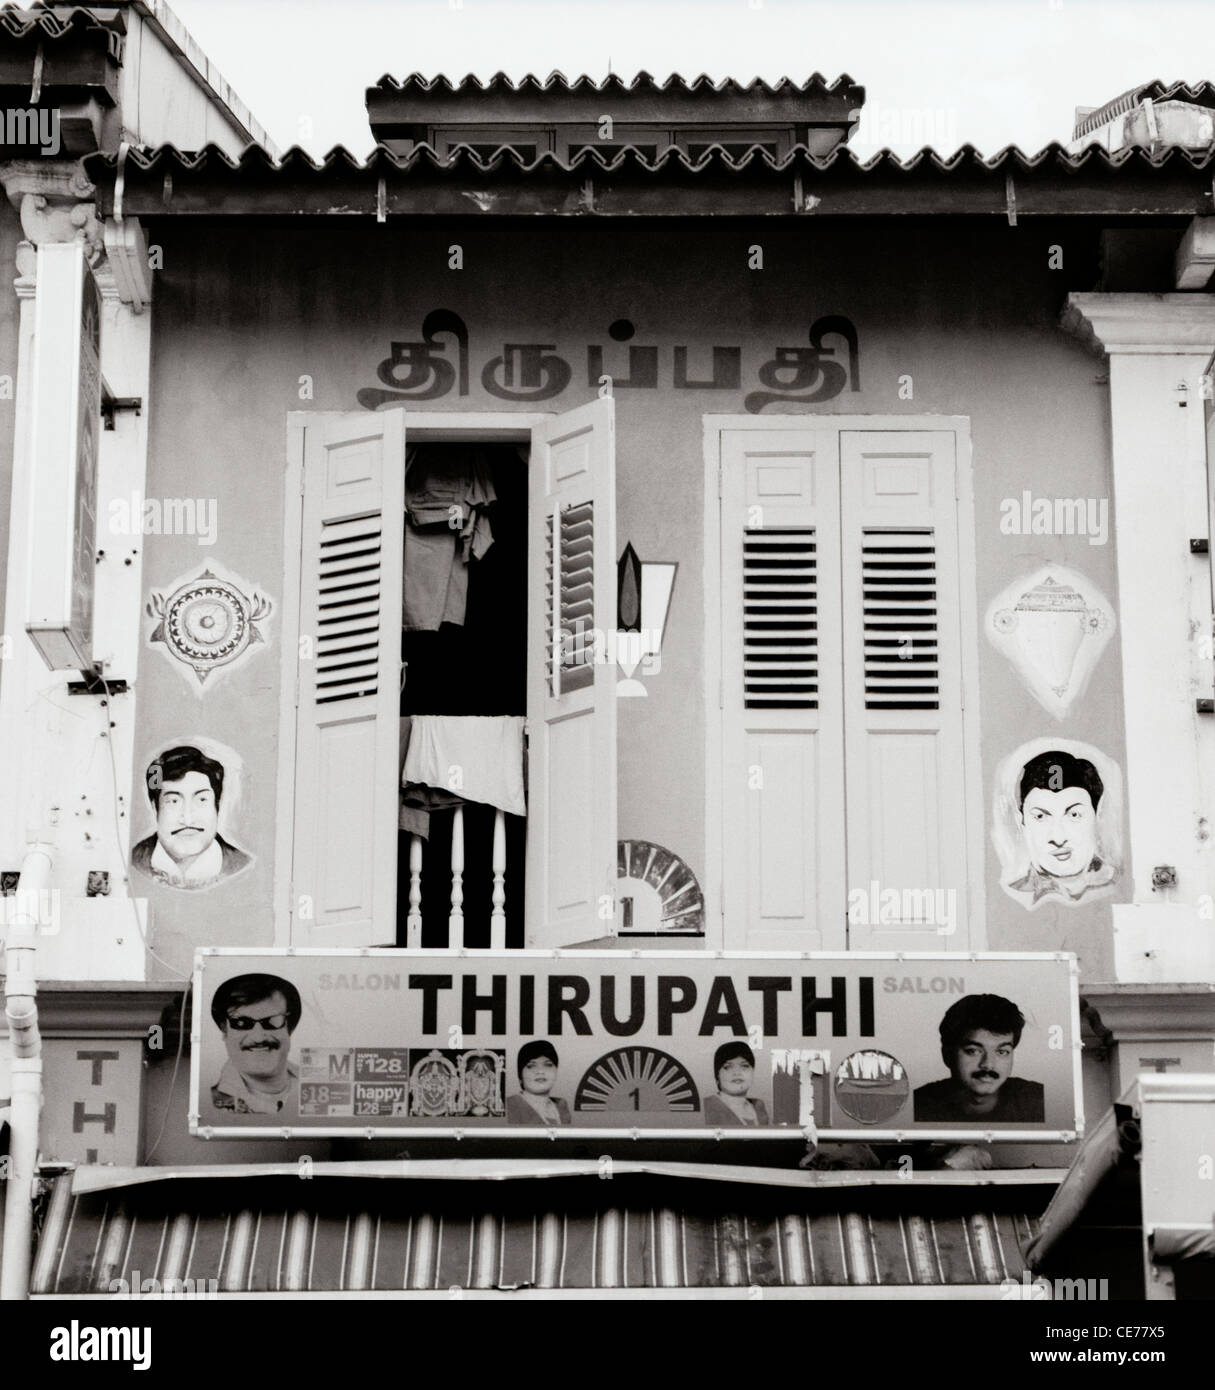 Hairdresser salon in Little india in Singapore in Far East Southeast Asia. Culture Building Shutters Life Lifestyle - Stock Image